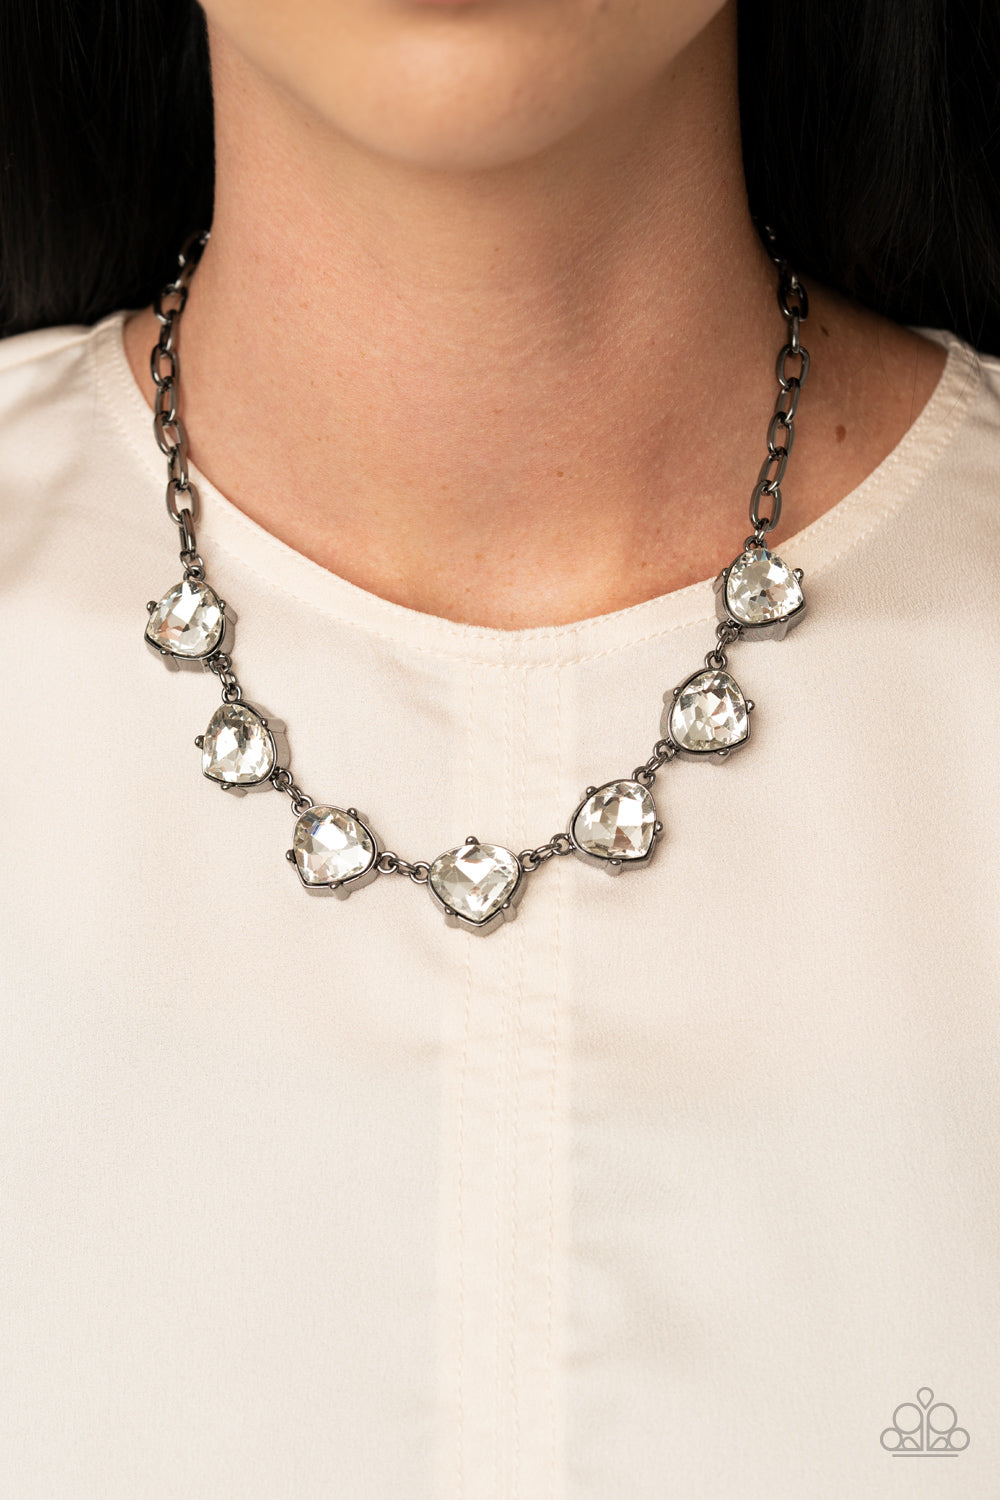 Star Quality Sparkle - Black Necklace - Paparazzi Accessories